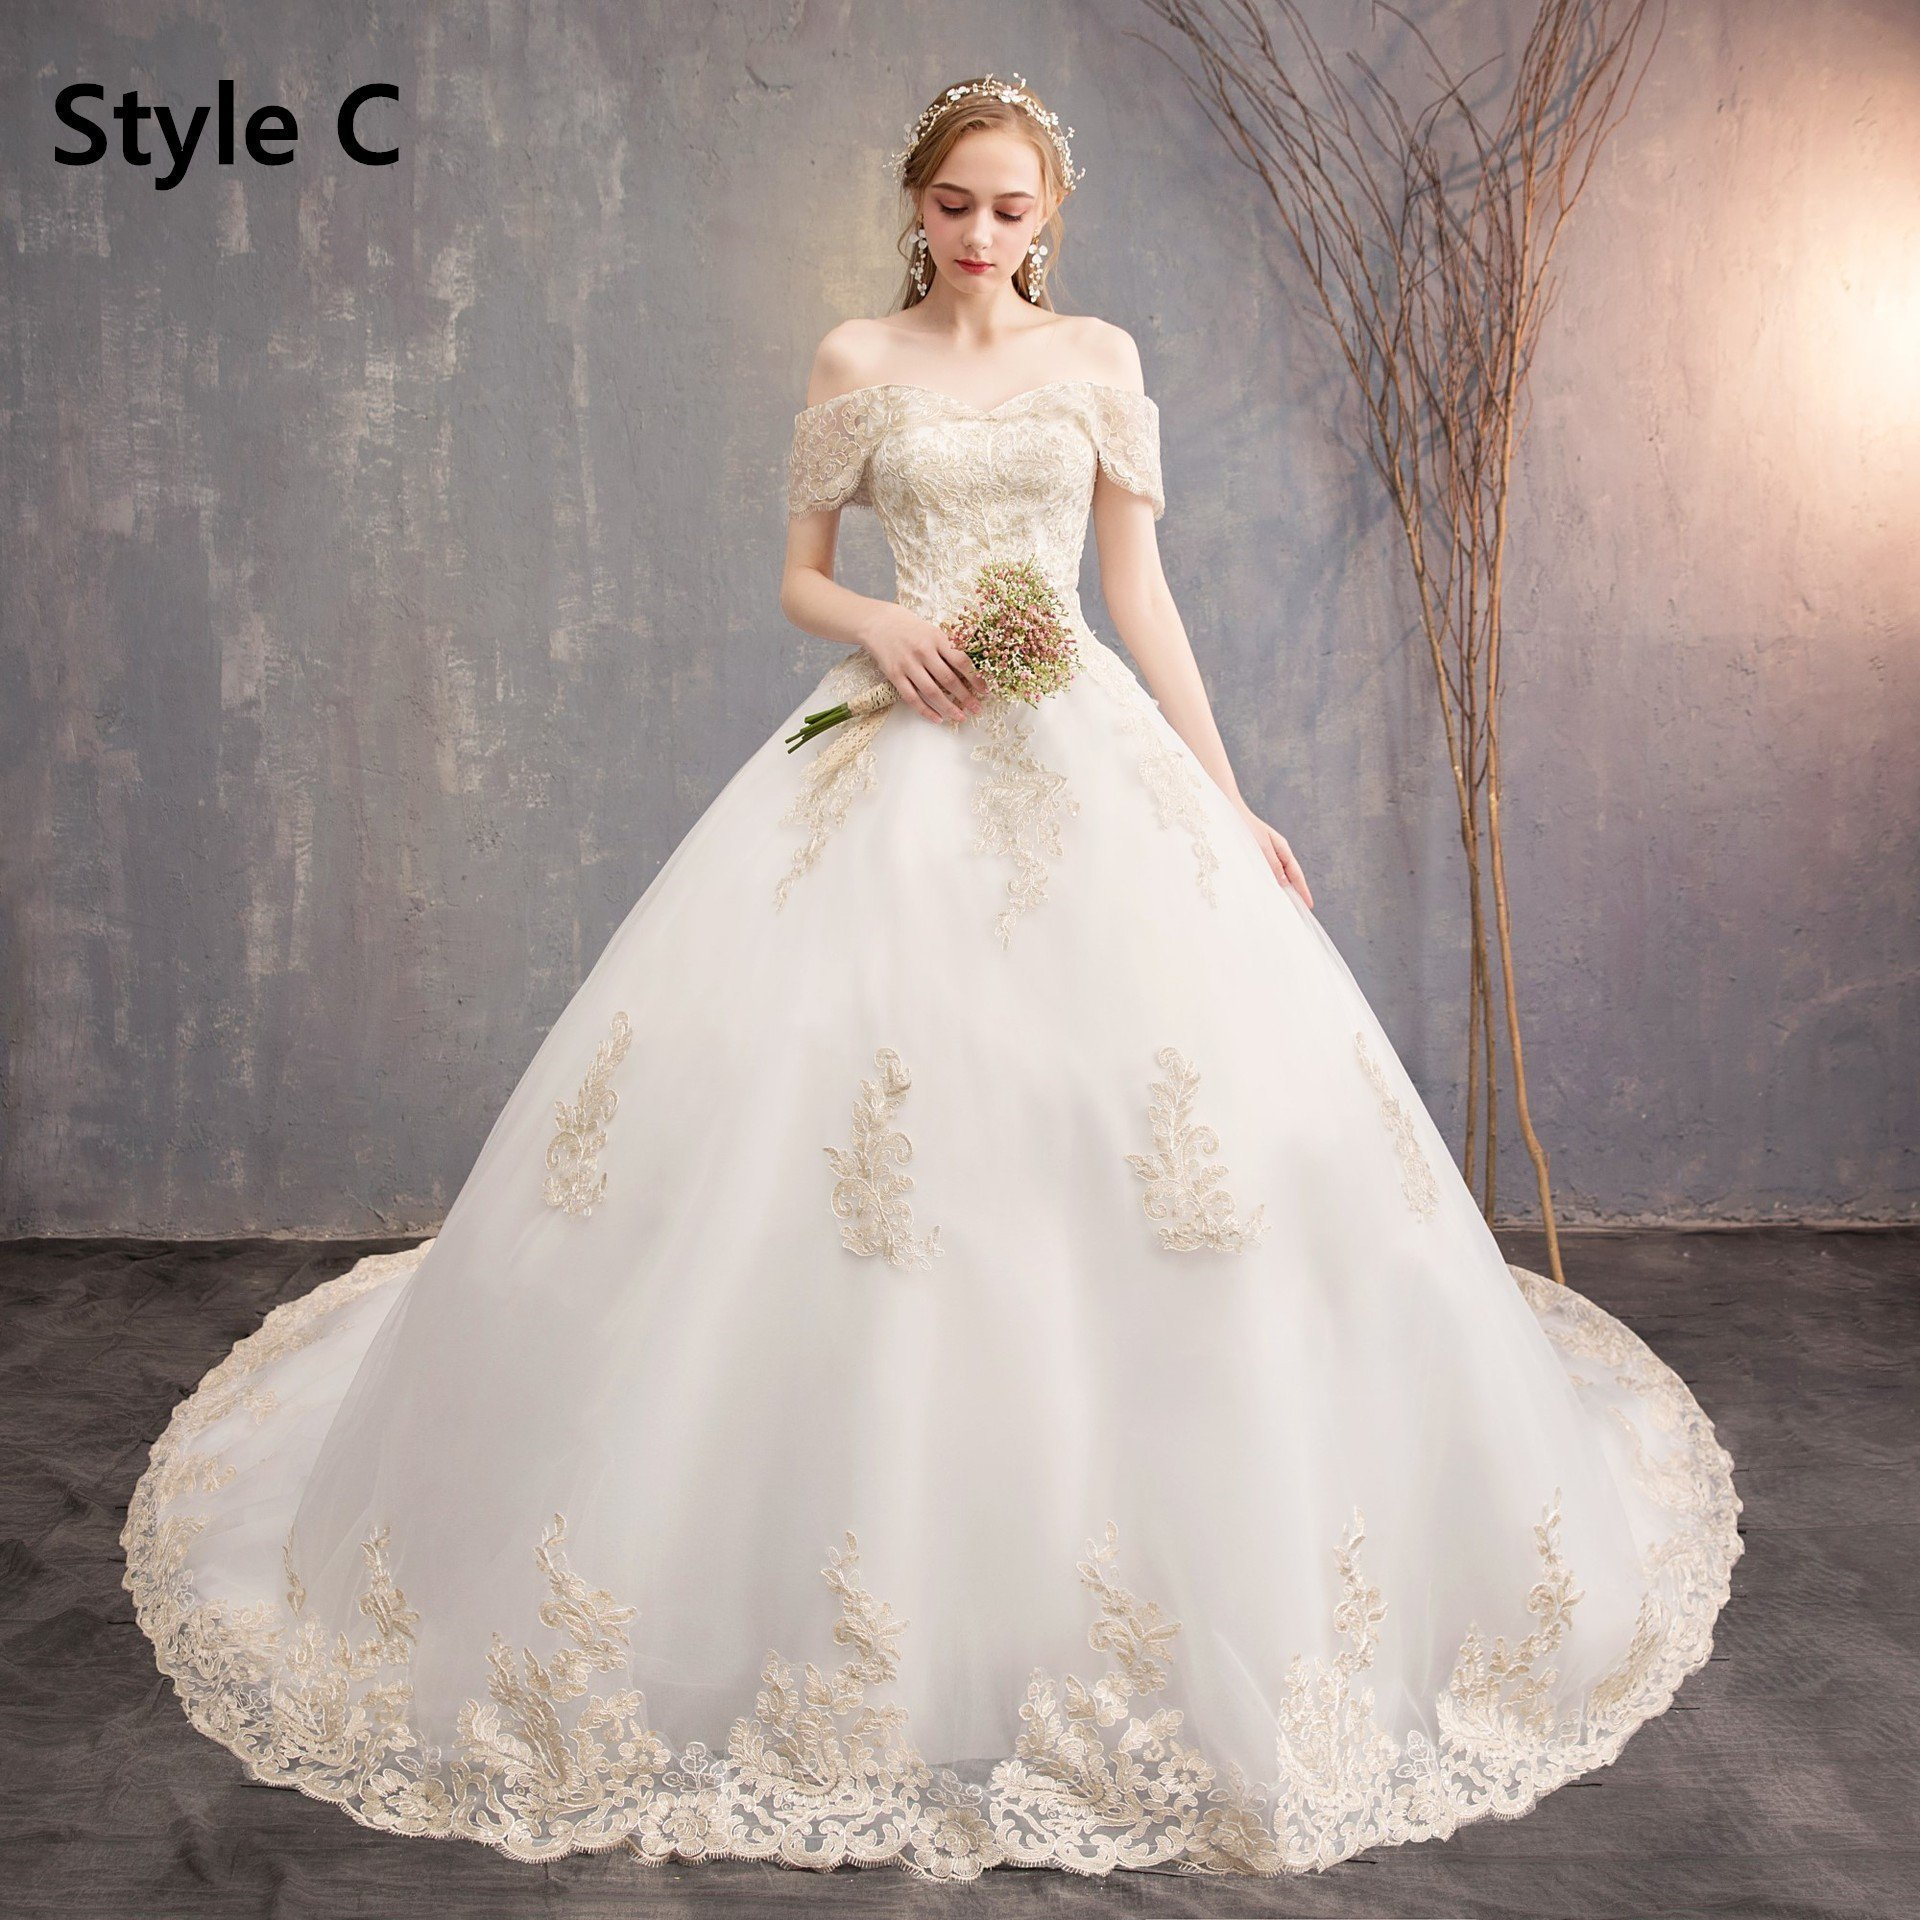 Best Wedding Dresses Lace Dresses Bralette Maxi Dress Great Gatsby Outfits Wedding Cloth For Men Long Sleeve Mermaid Wedding Dress Wedding Dresses For Mature Brides Ladies Floral Dress